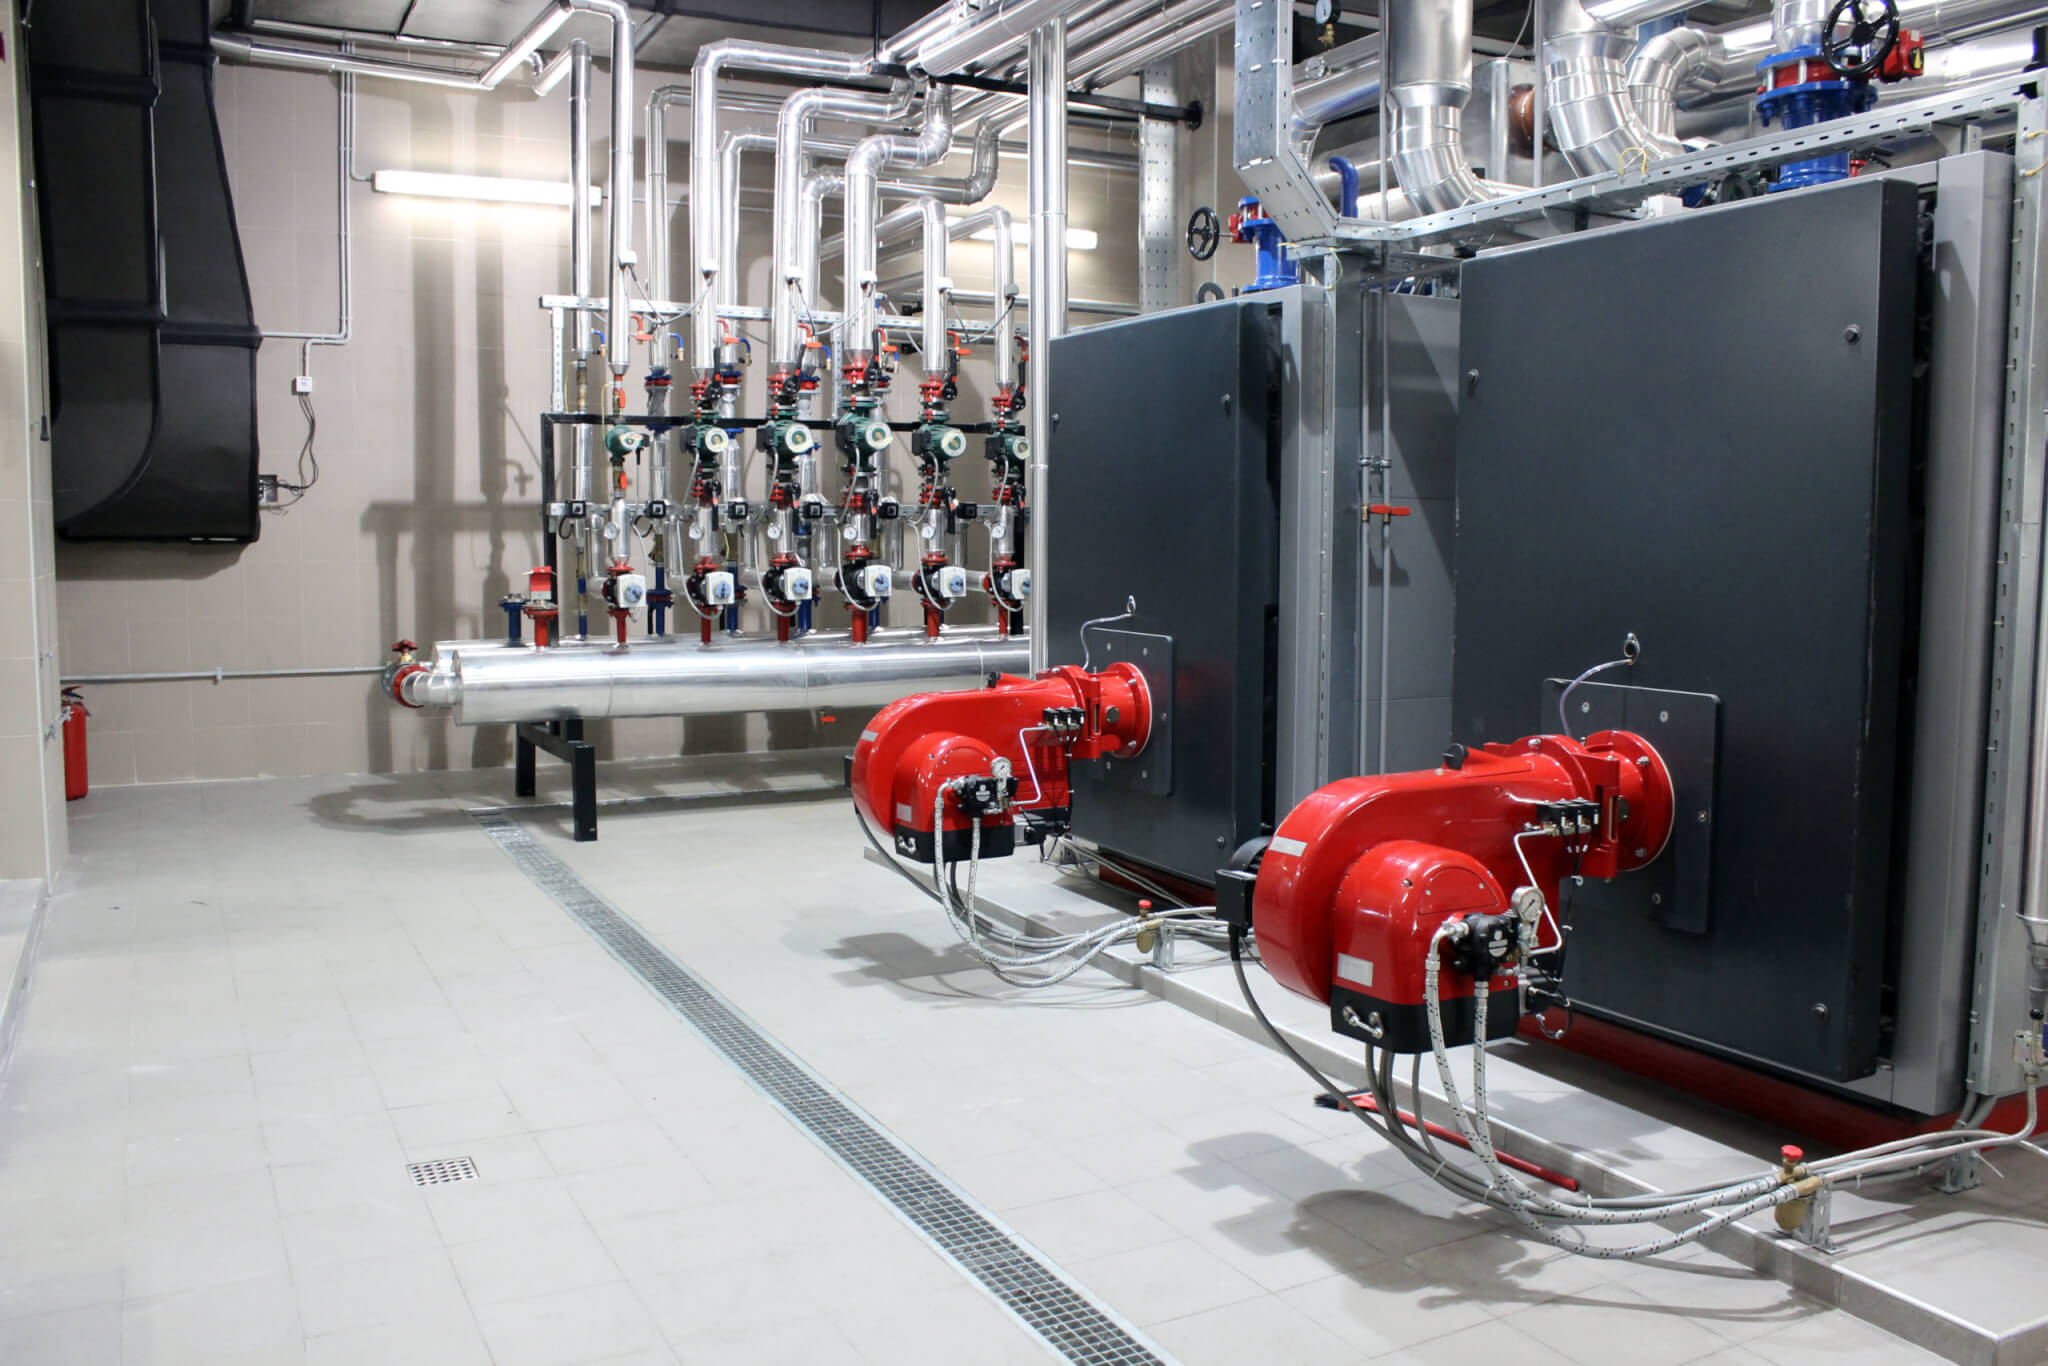 Interior of a room with boiler, and cooling system for industry or building cooling and heating